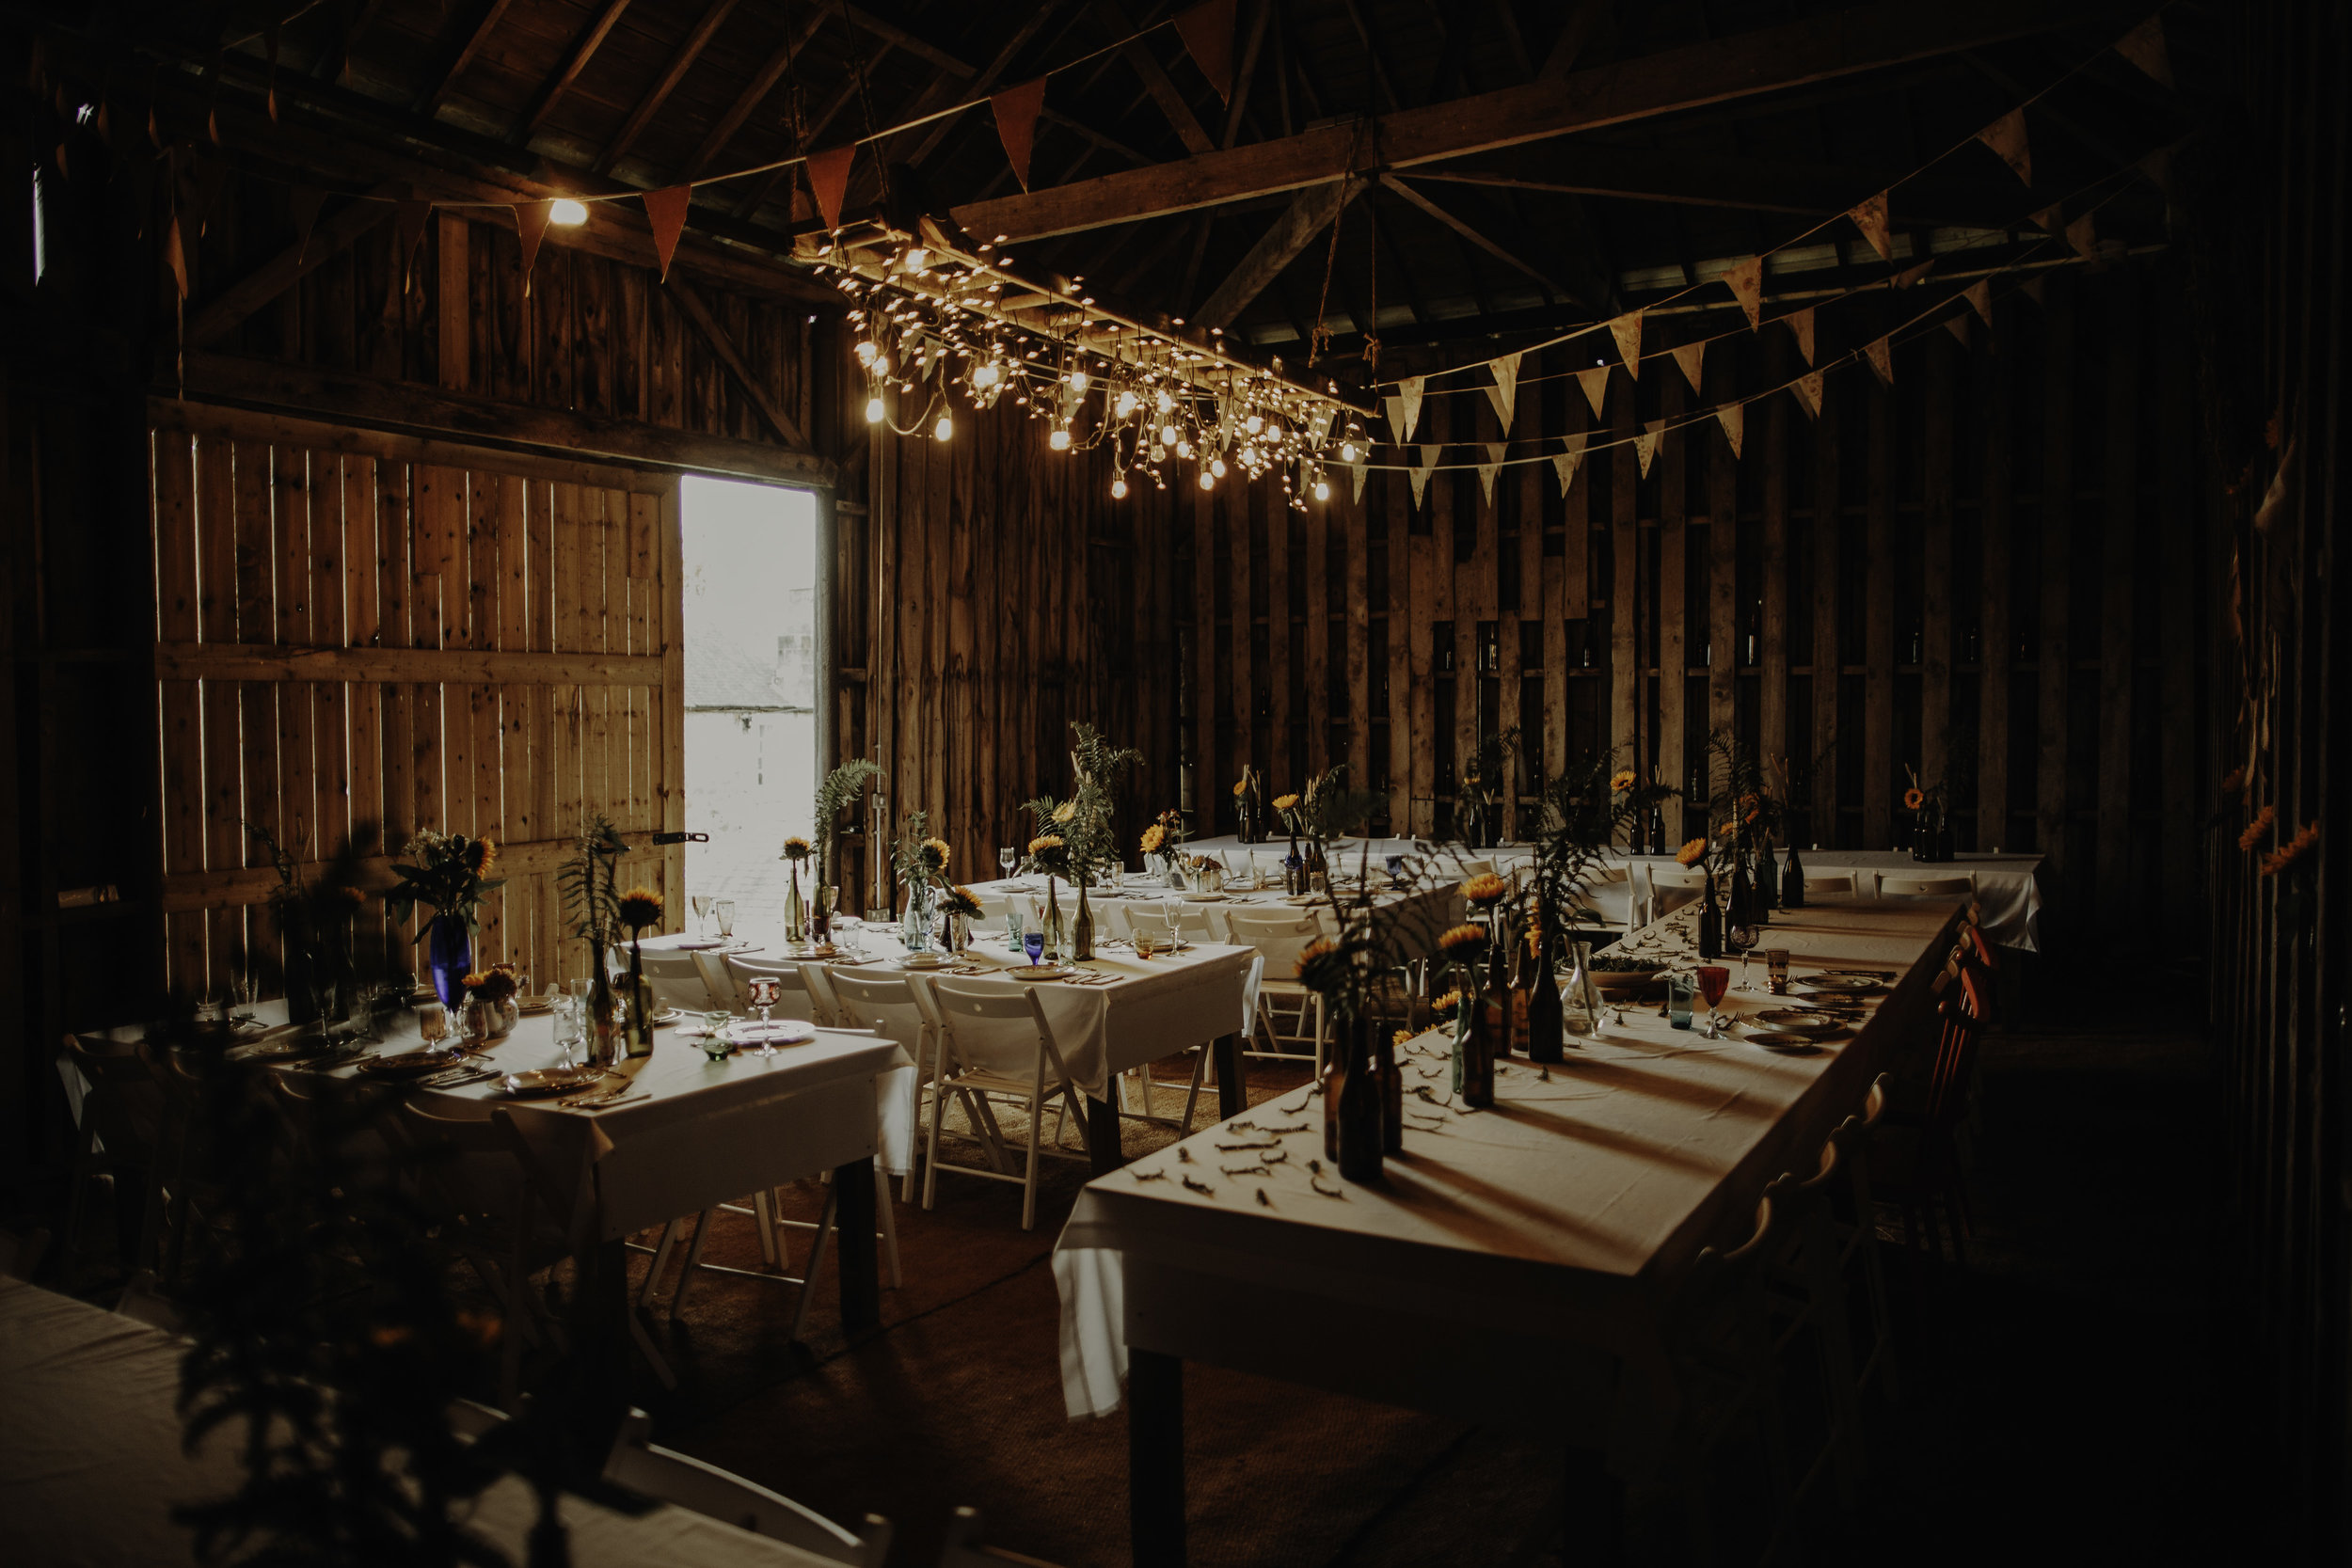 boho wedding Scotland barn rustic venue near Glasgow